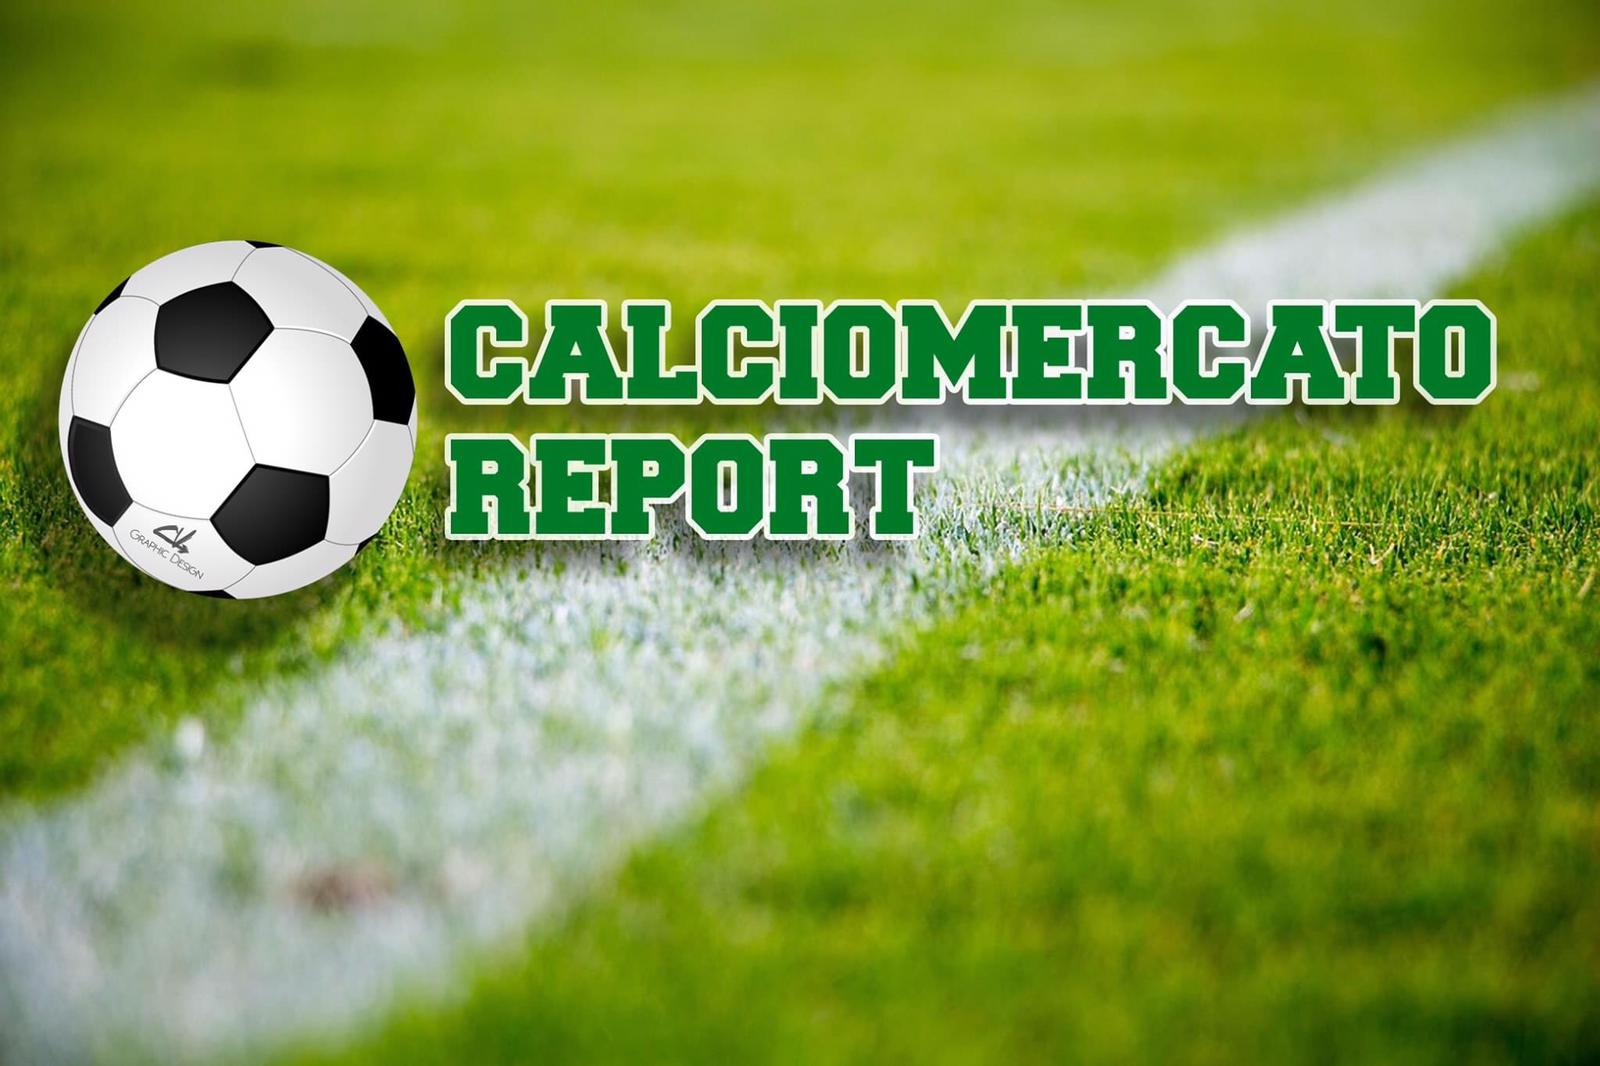 calciomercatoreport.it